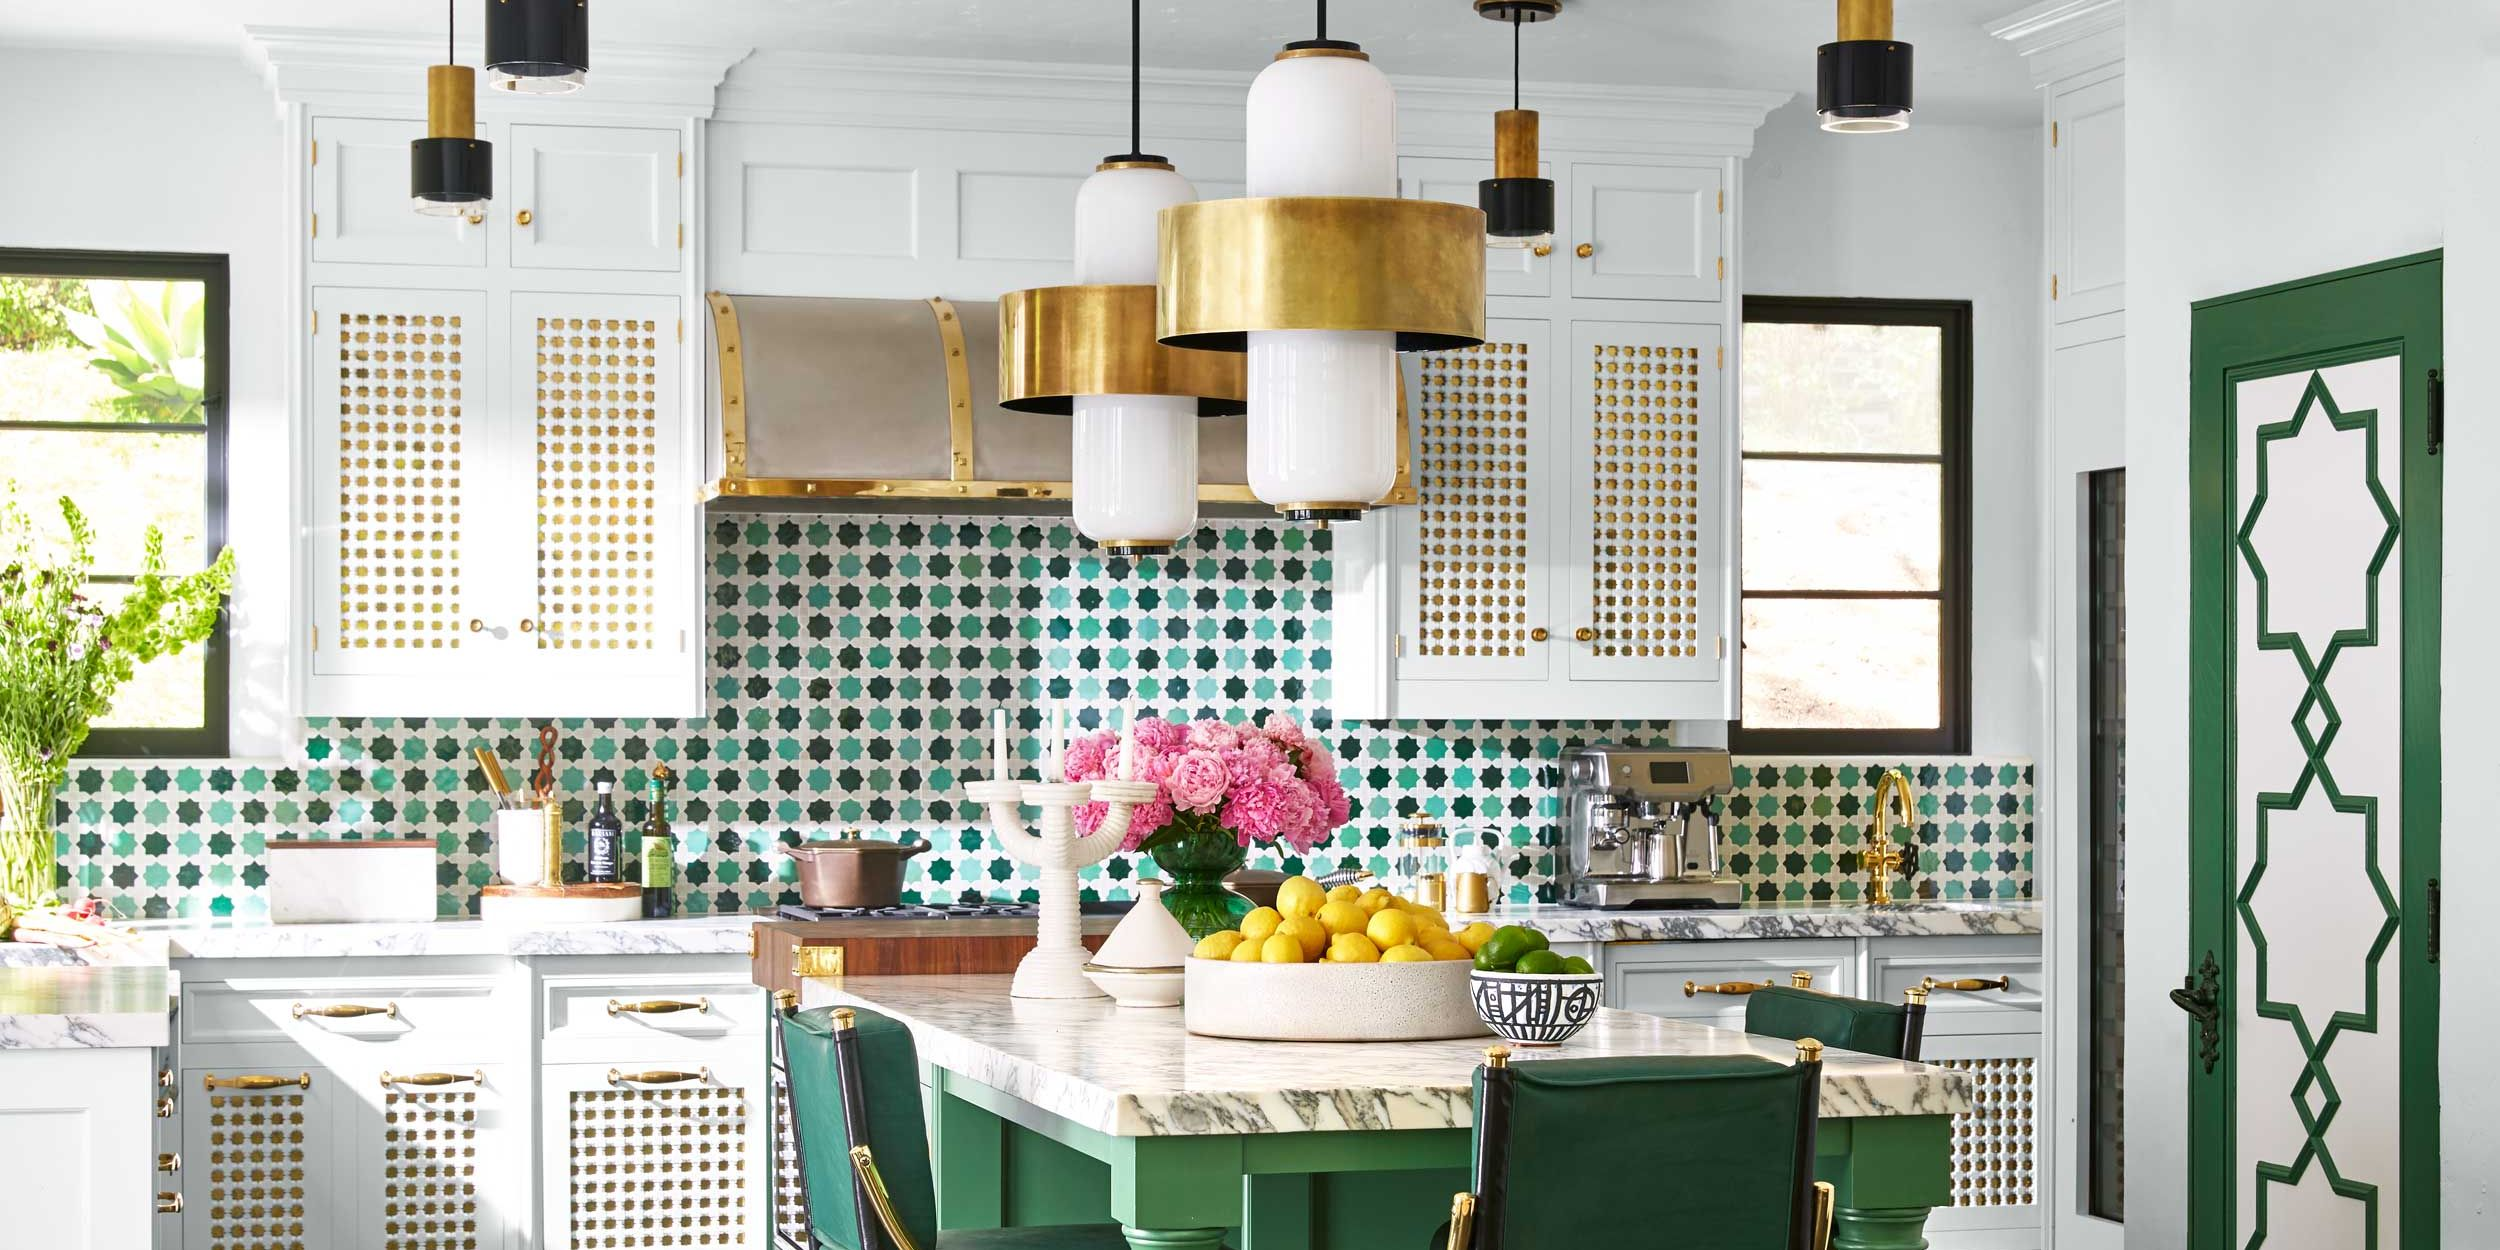 70 Kitchens That'll Make You Want To Redo Yours